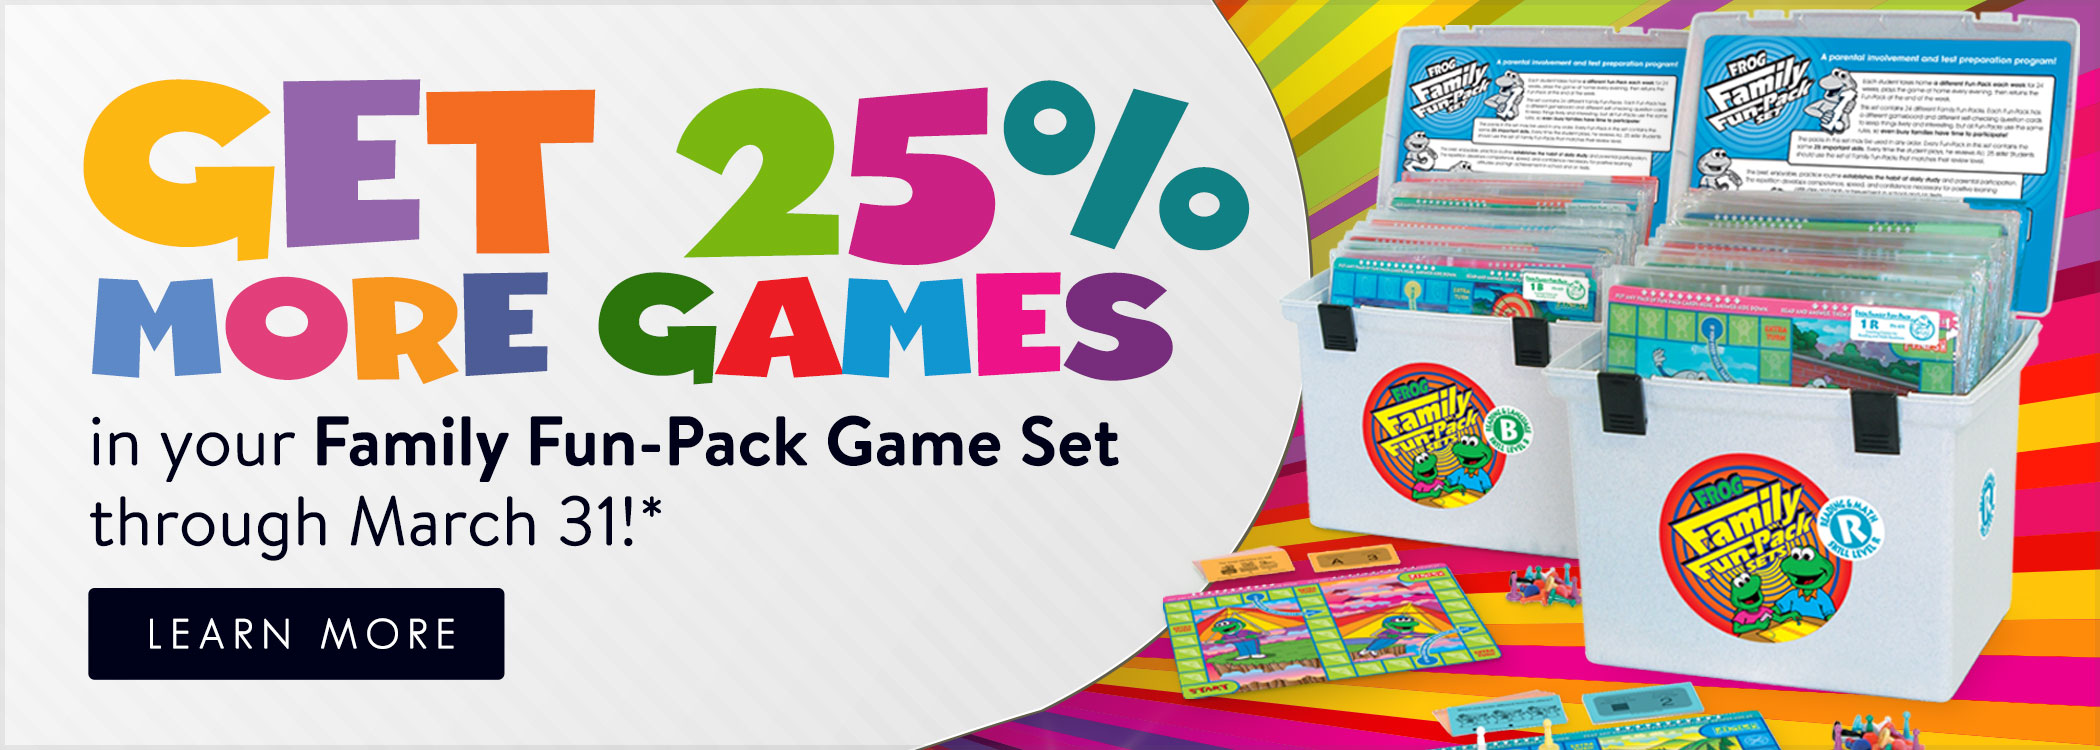 Get 25% MORE GAMES in your Frog Family Fun-Pack Set